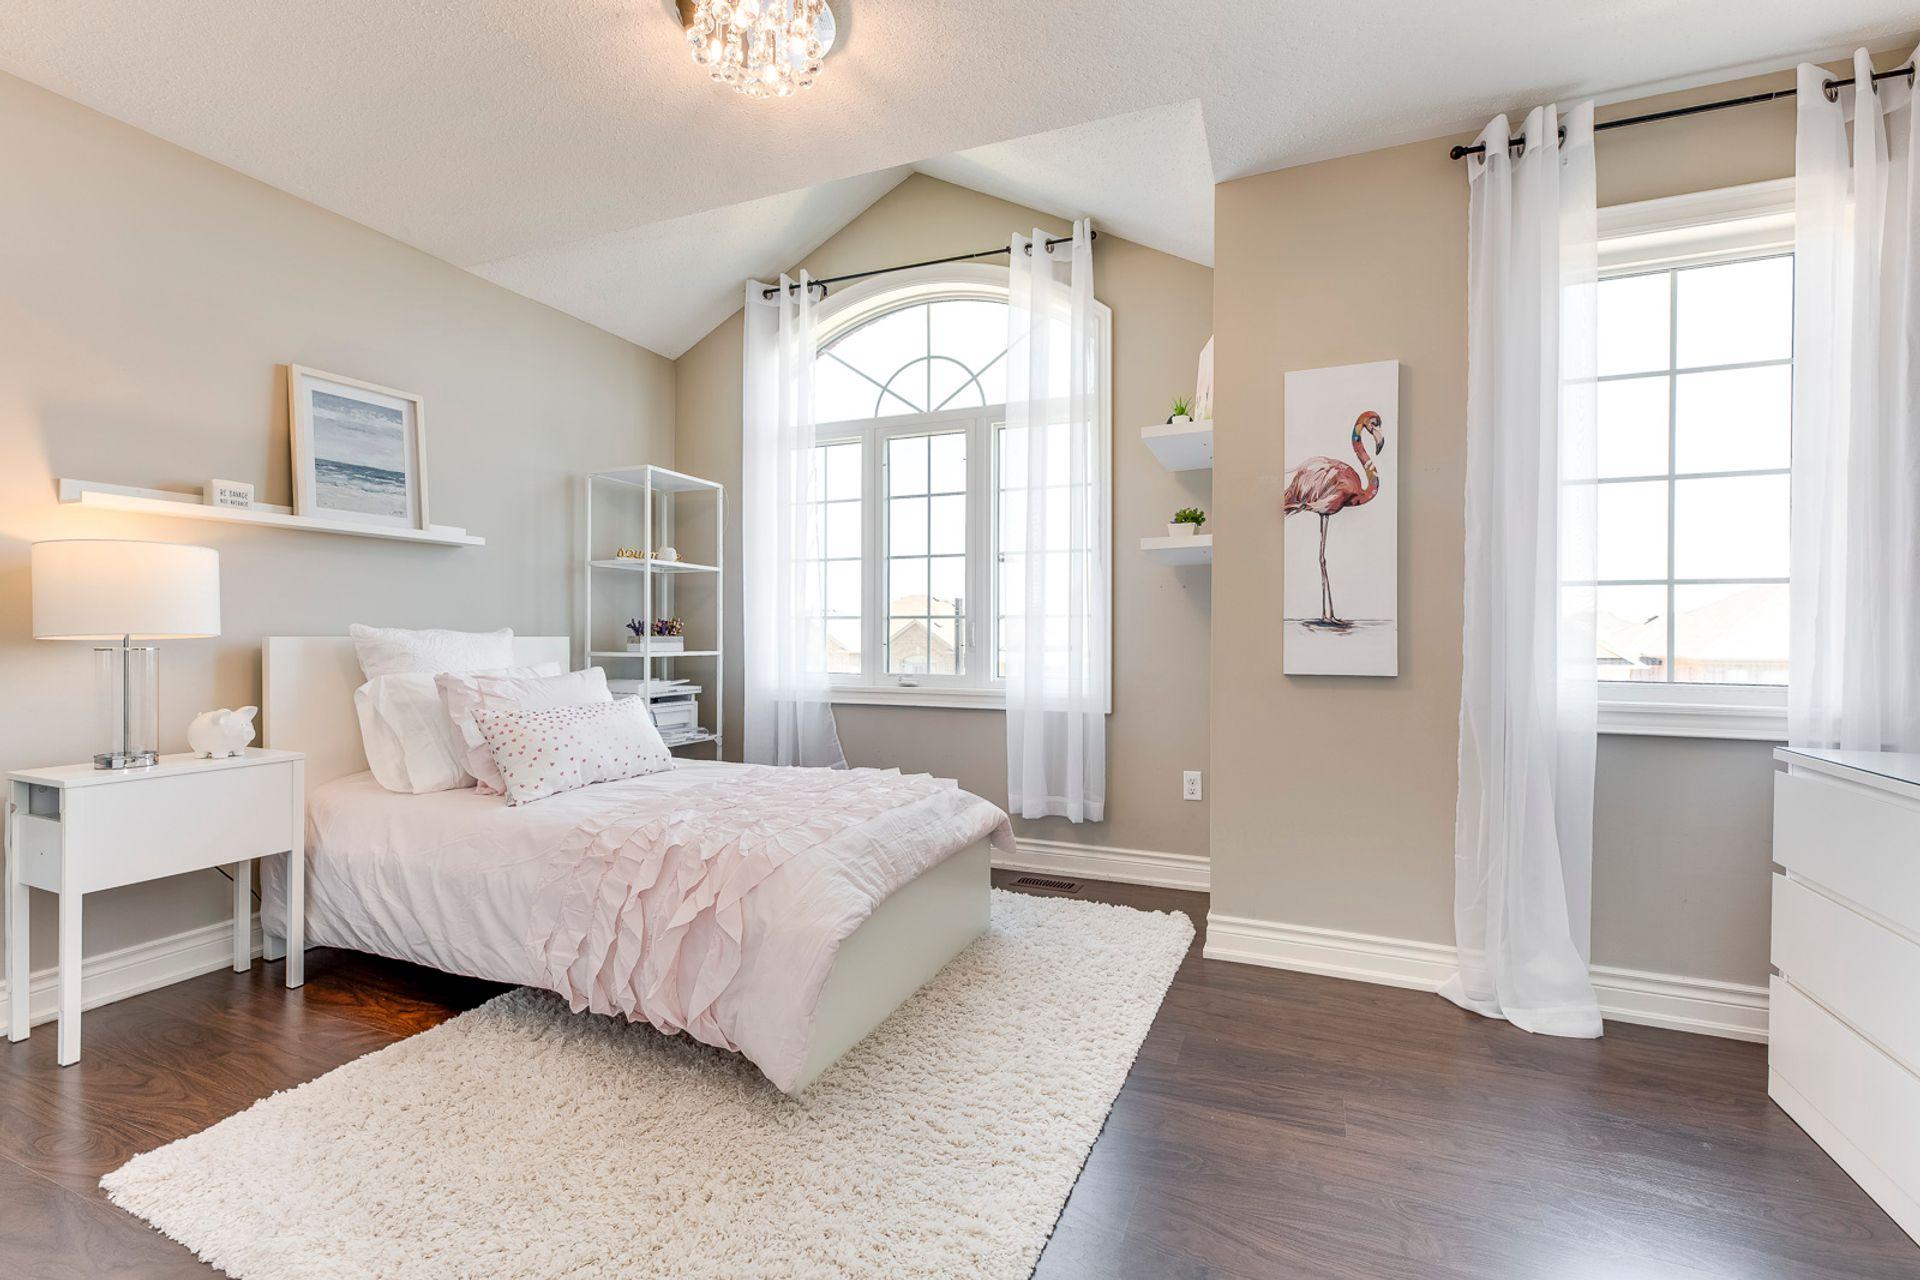 mls-44 at 5480 Meadowcrest Avenue, Churchill Meadows, Mississauga